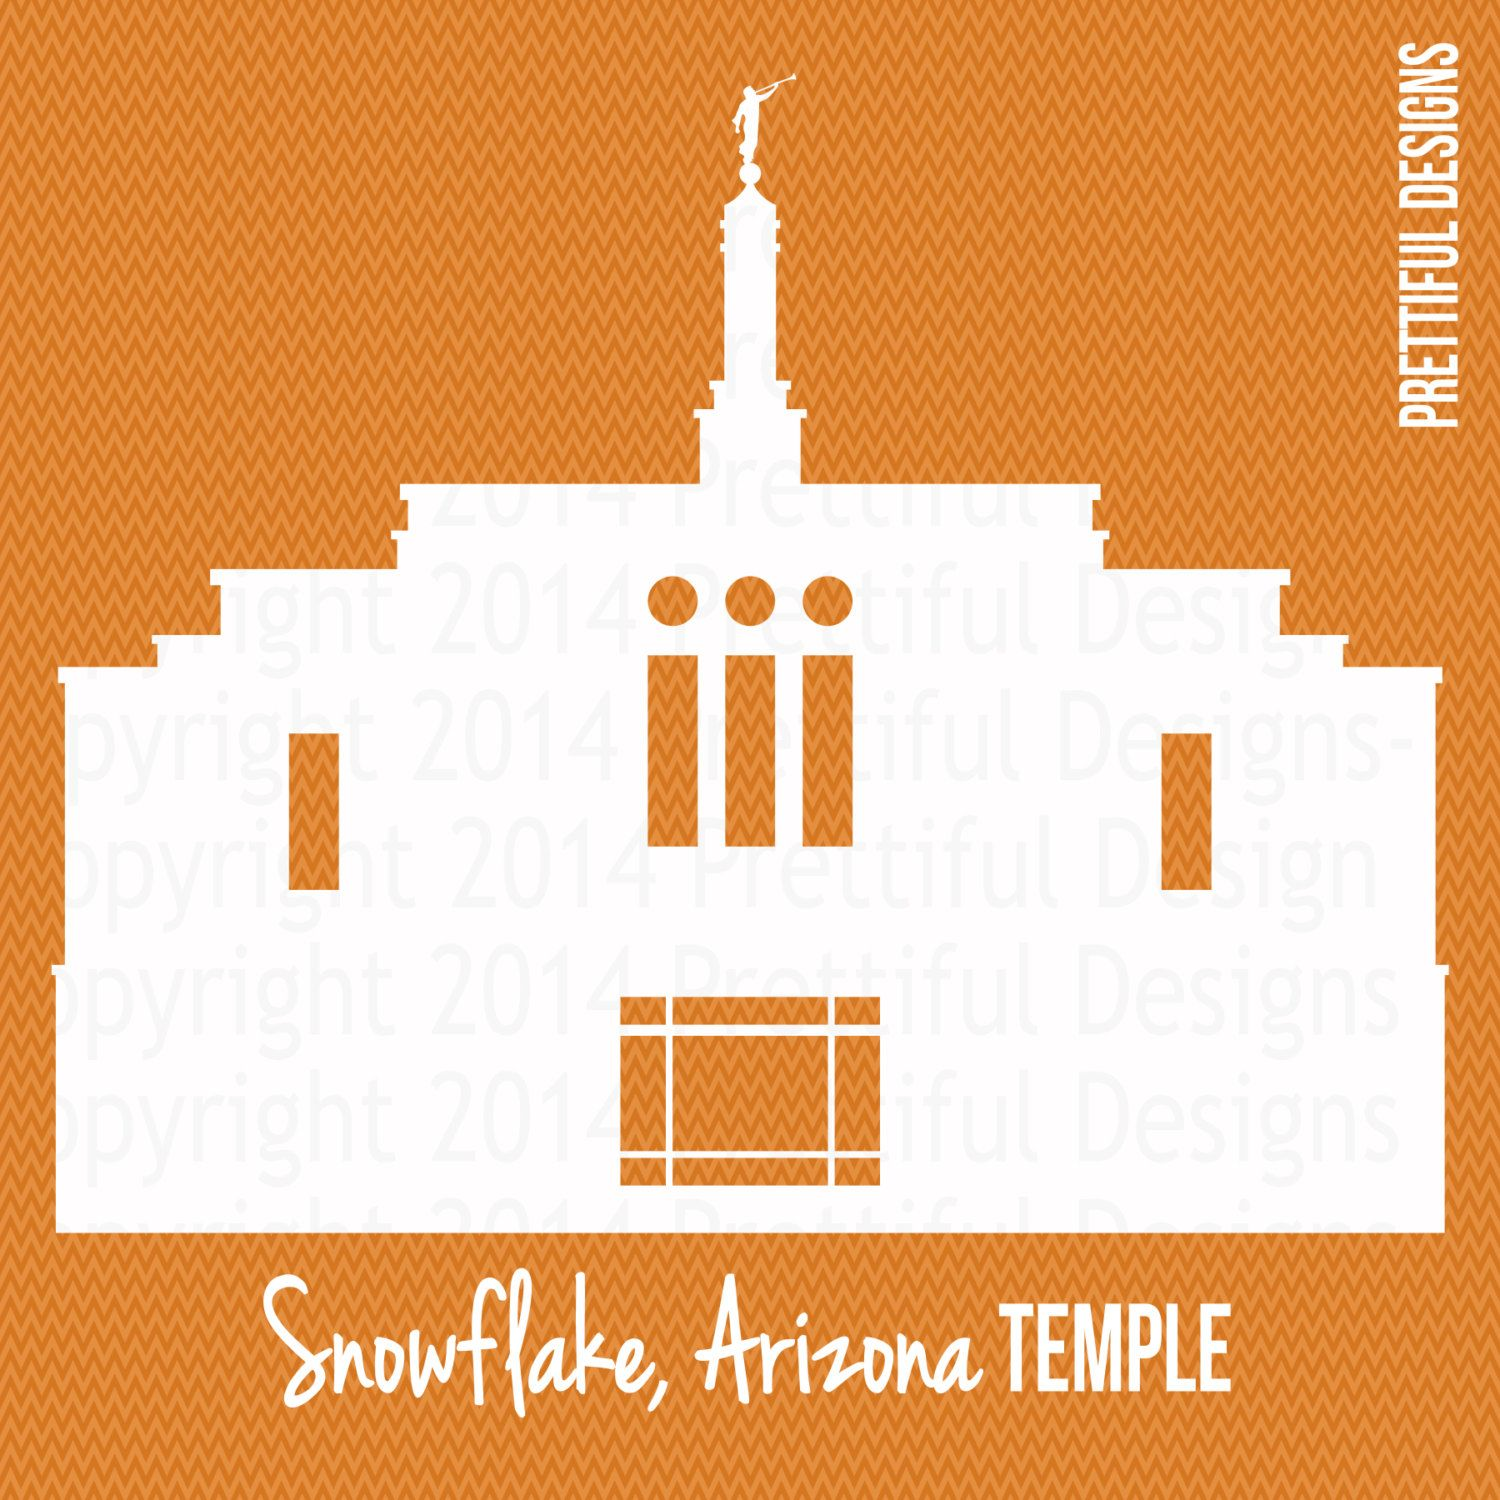 hight resolution of 1500x1500 snowflake arizona temple silhouette lds mormon clip art png eps